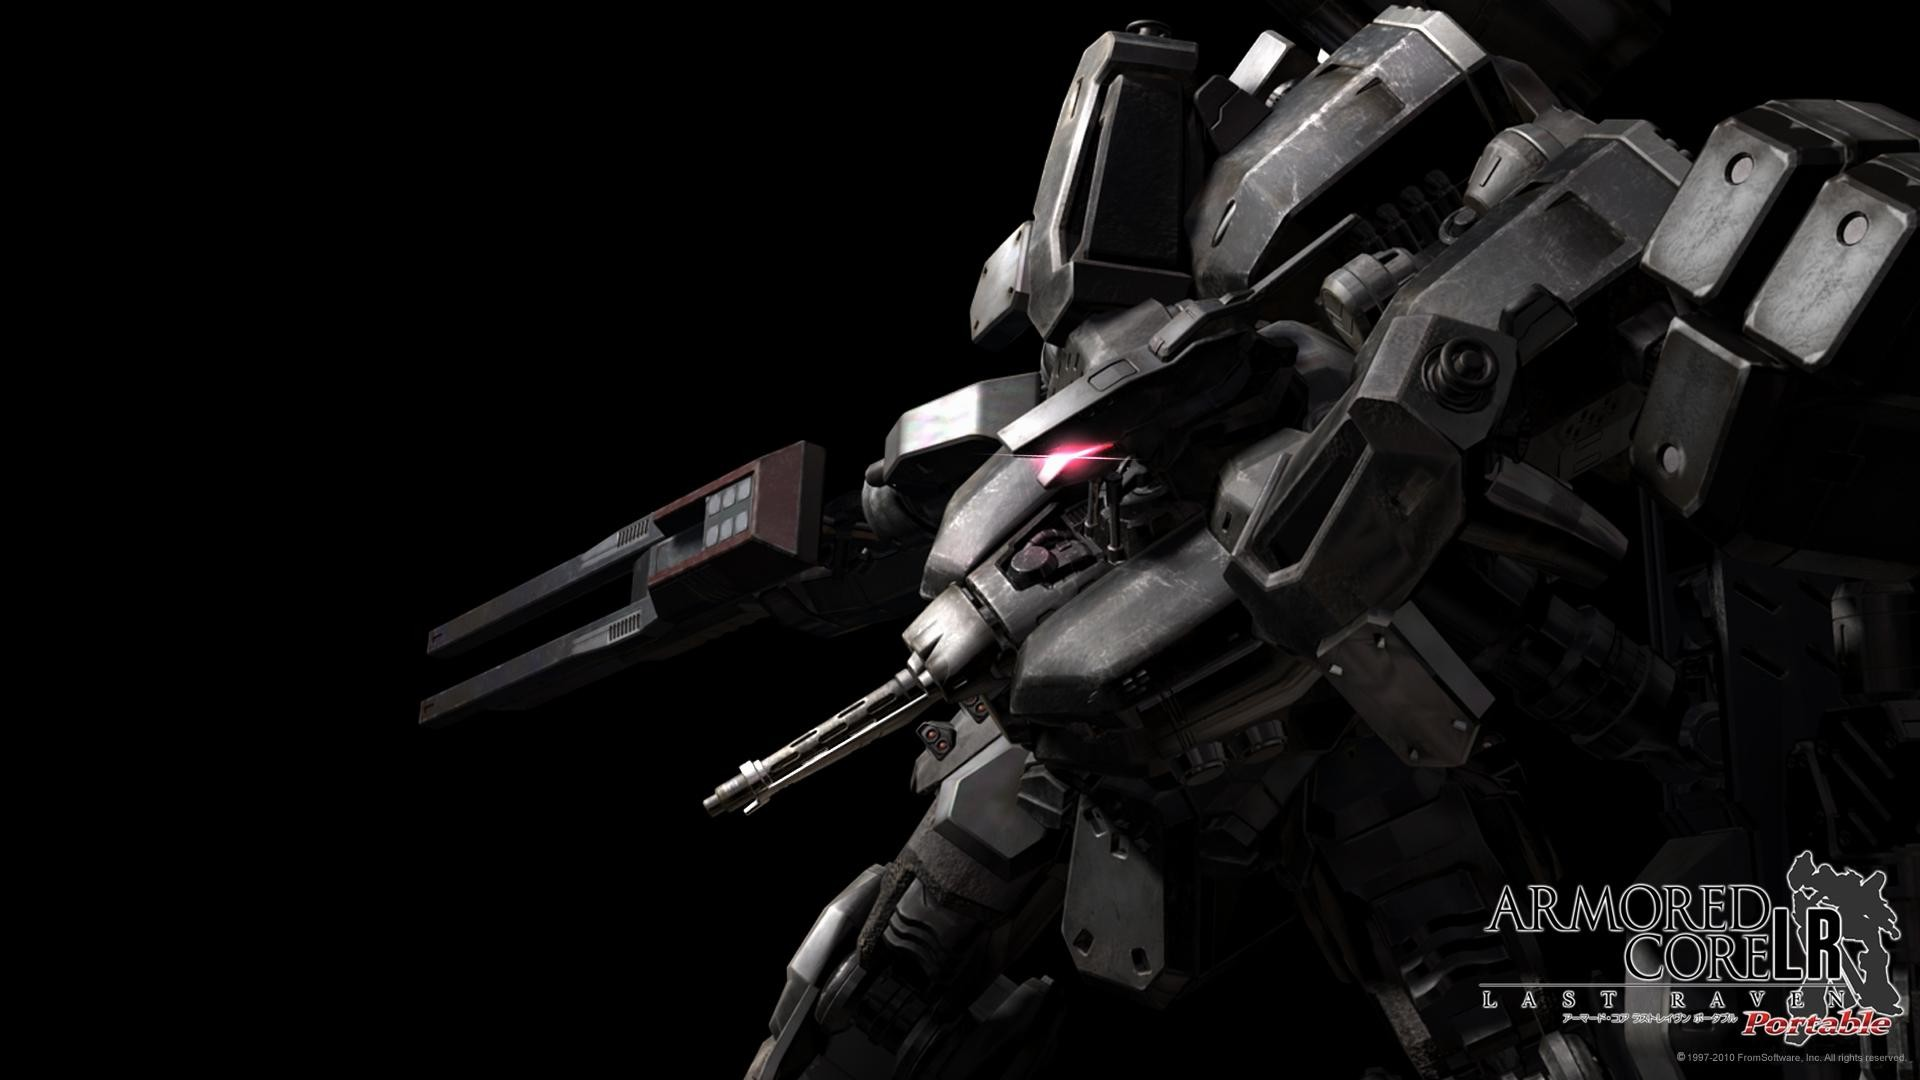 Armored Core Wallpaper 65 Images